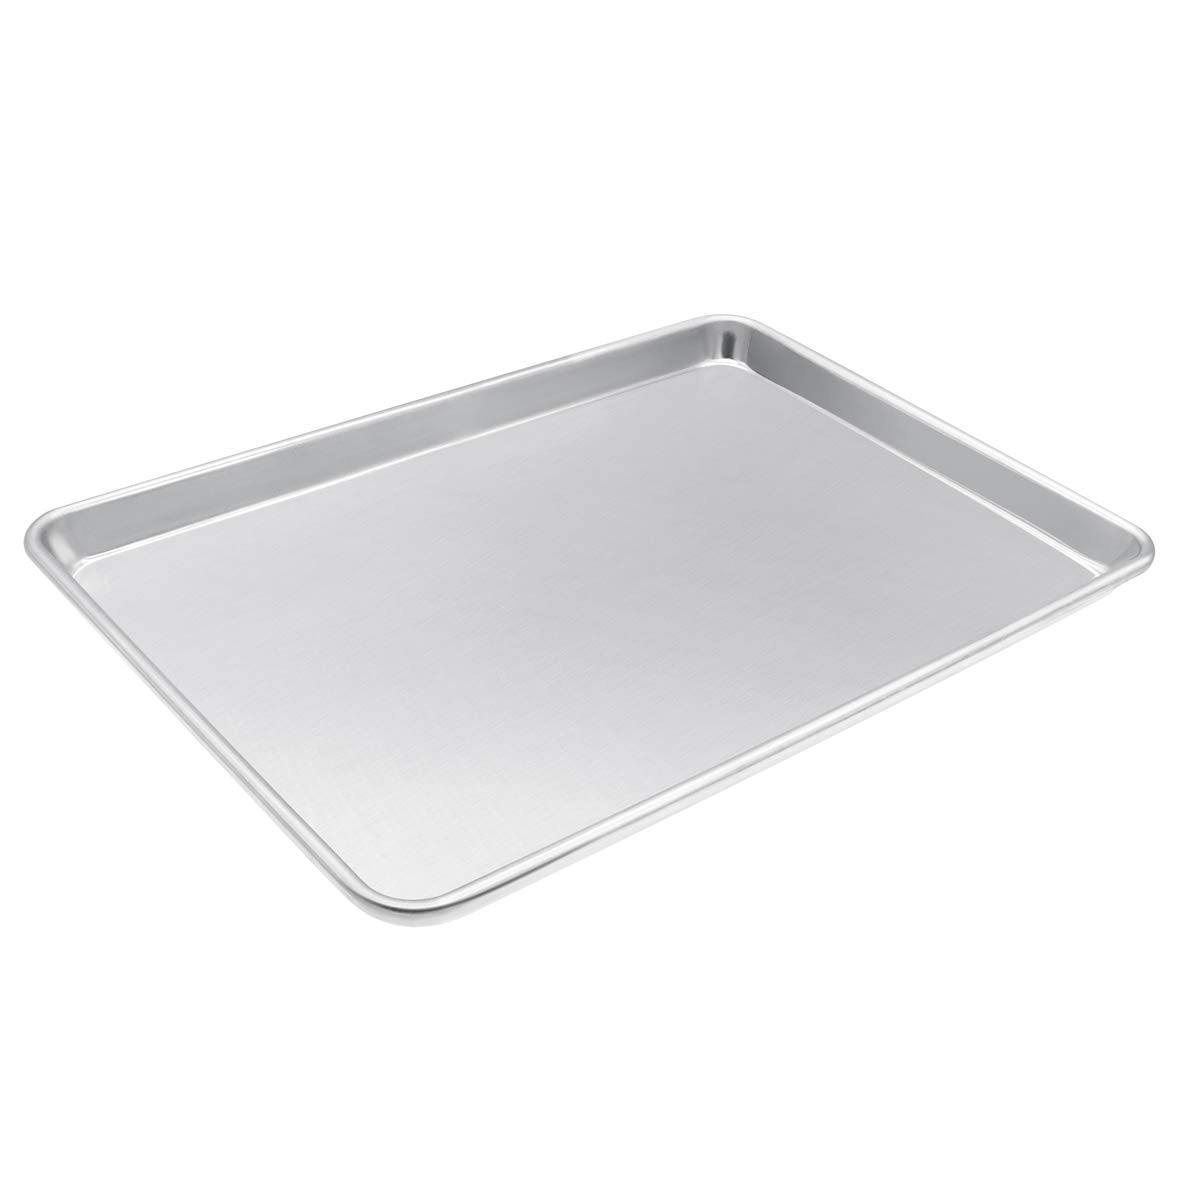 TOP KITCHEN 13'' x 18'' Half Size Aluminum Baking and Cookie Sheet Pan